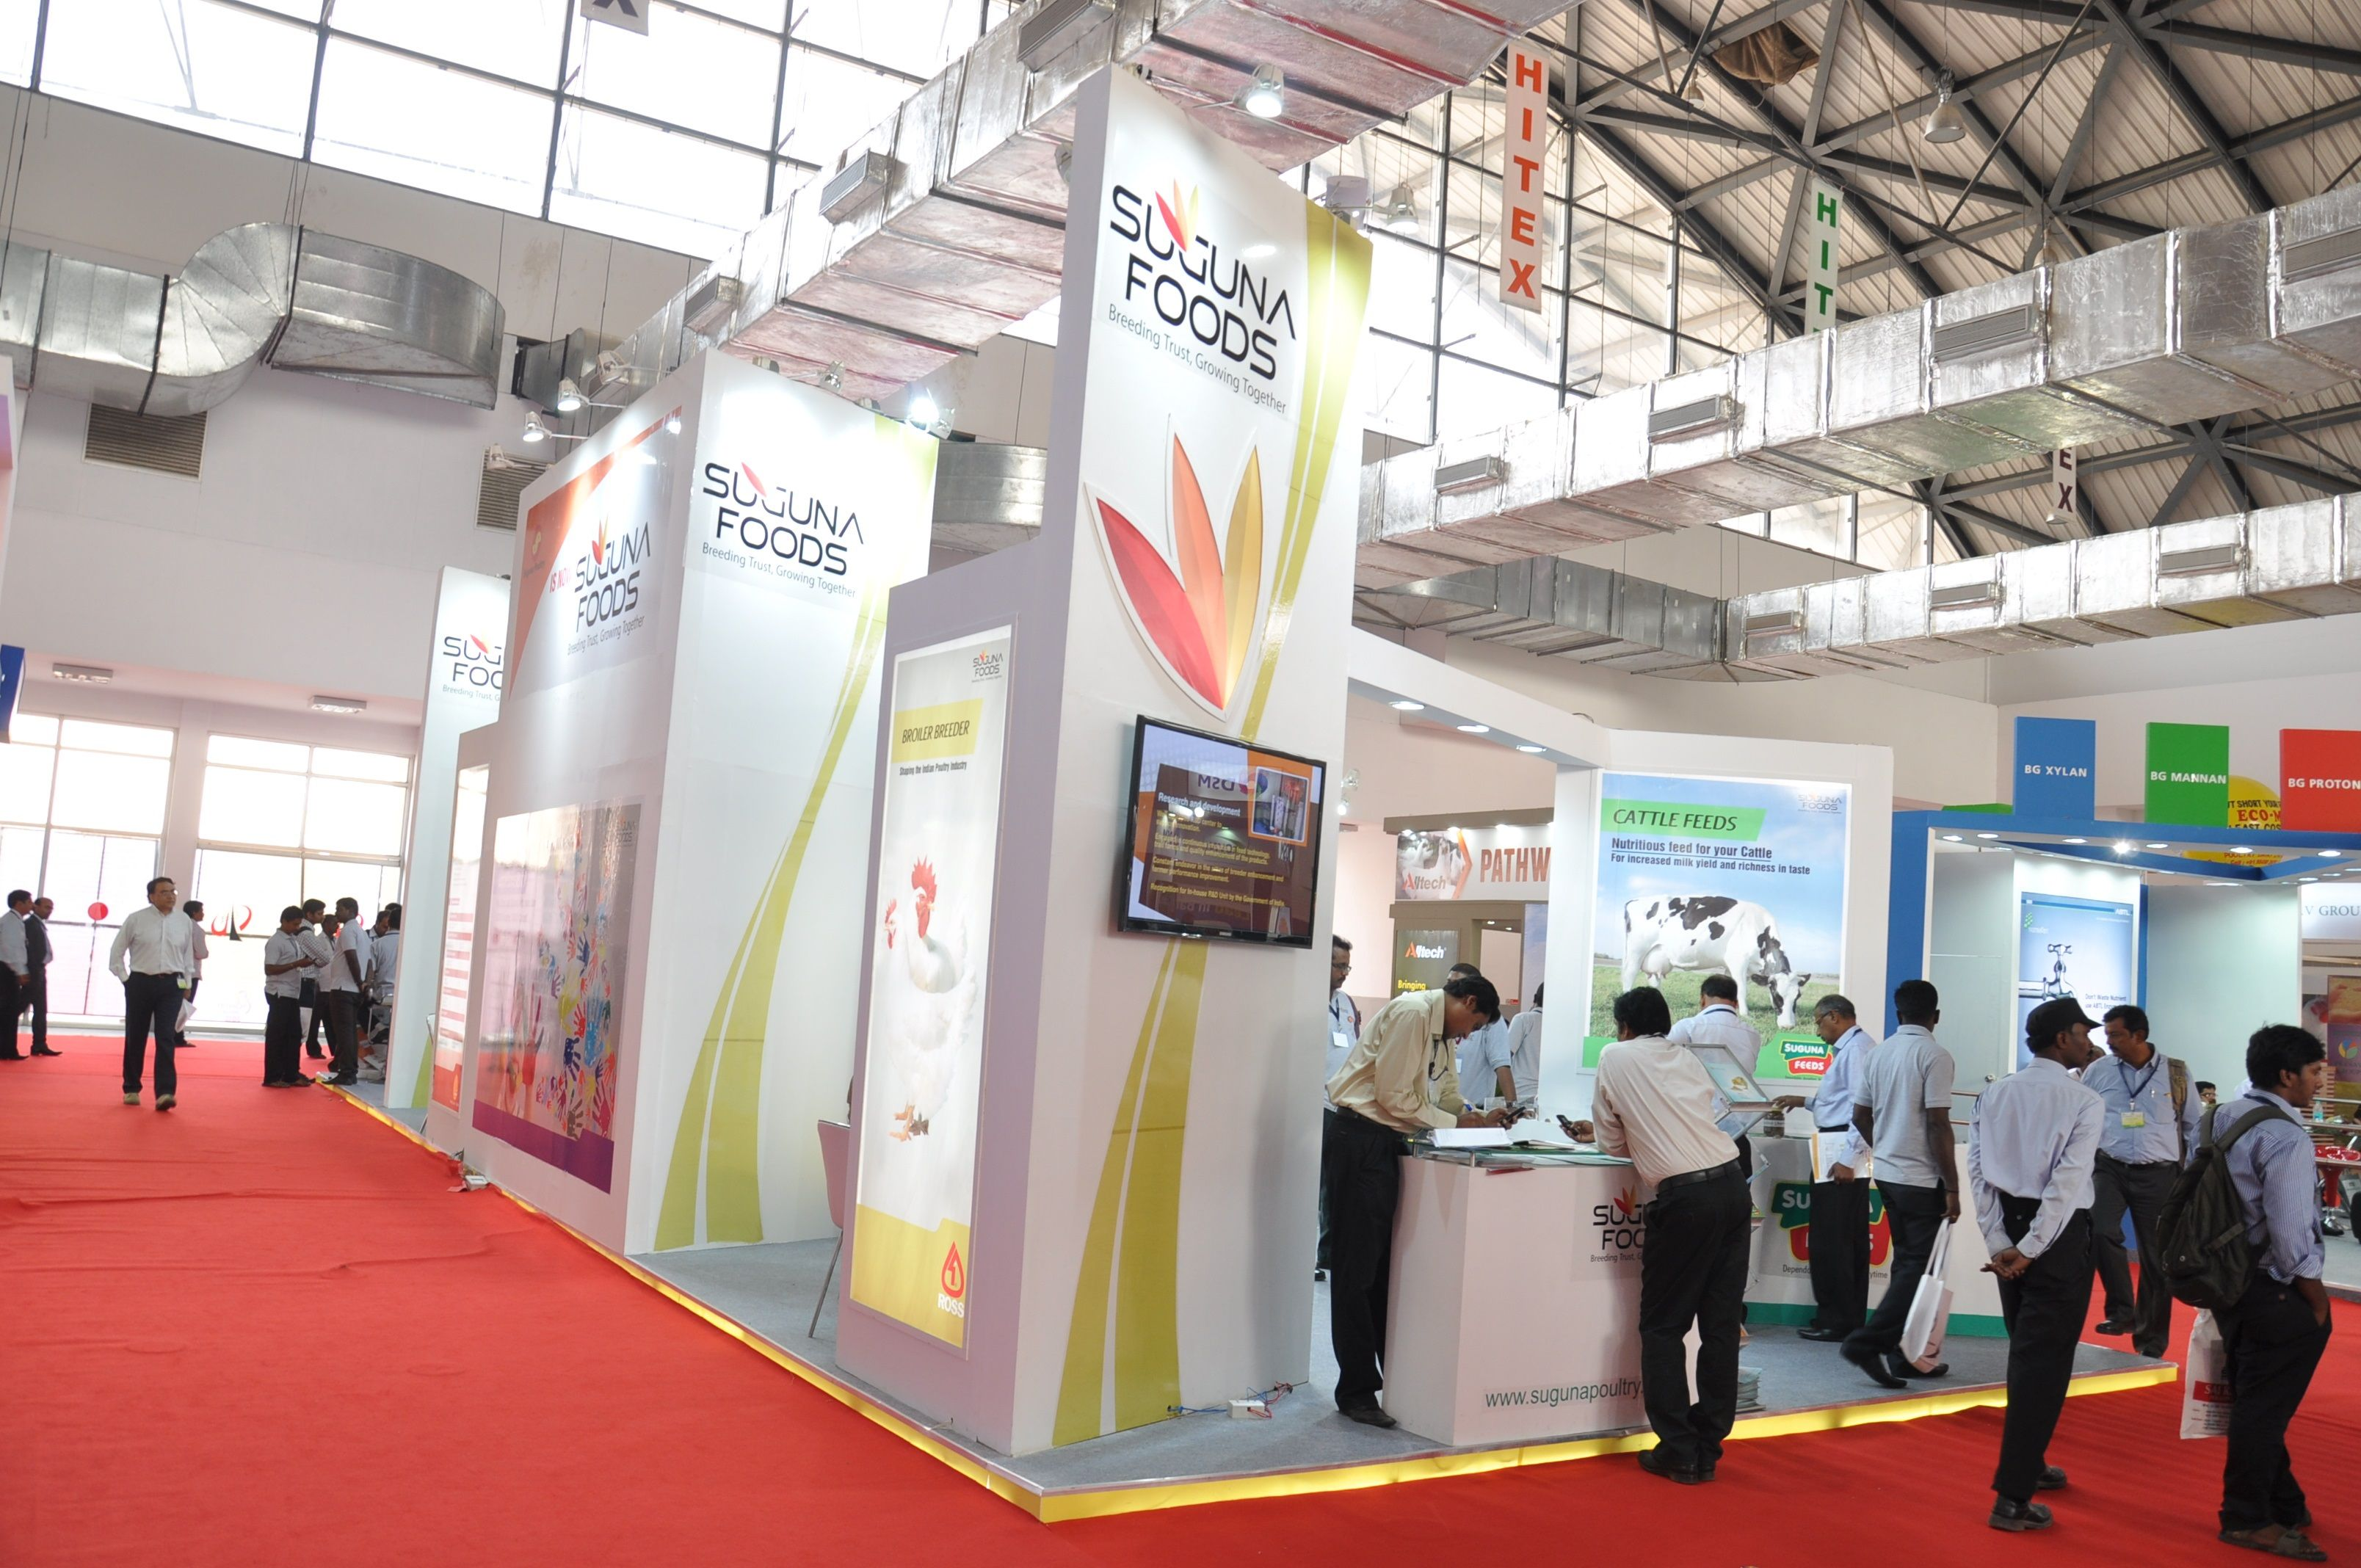 Exhibition Stall Panels : Suguna foods poultry india hitex hyderabad